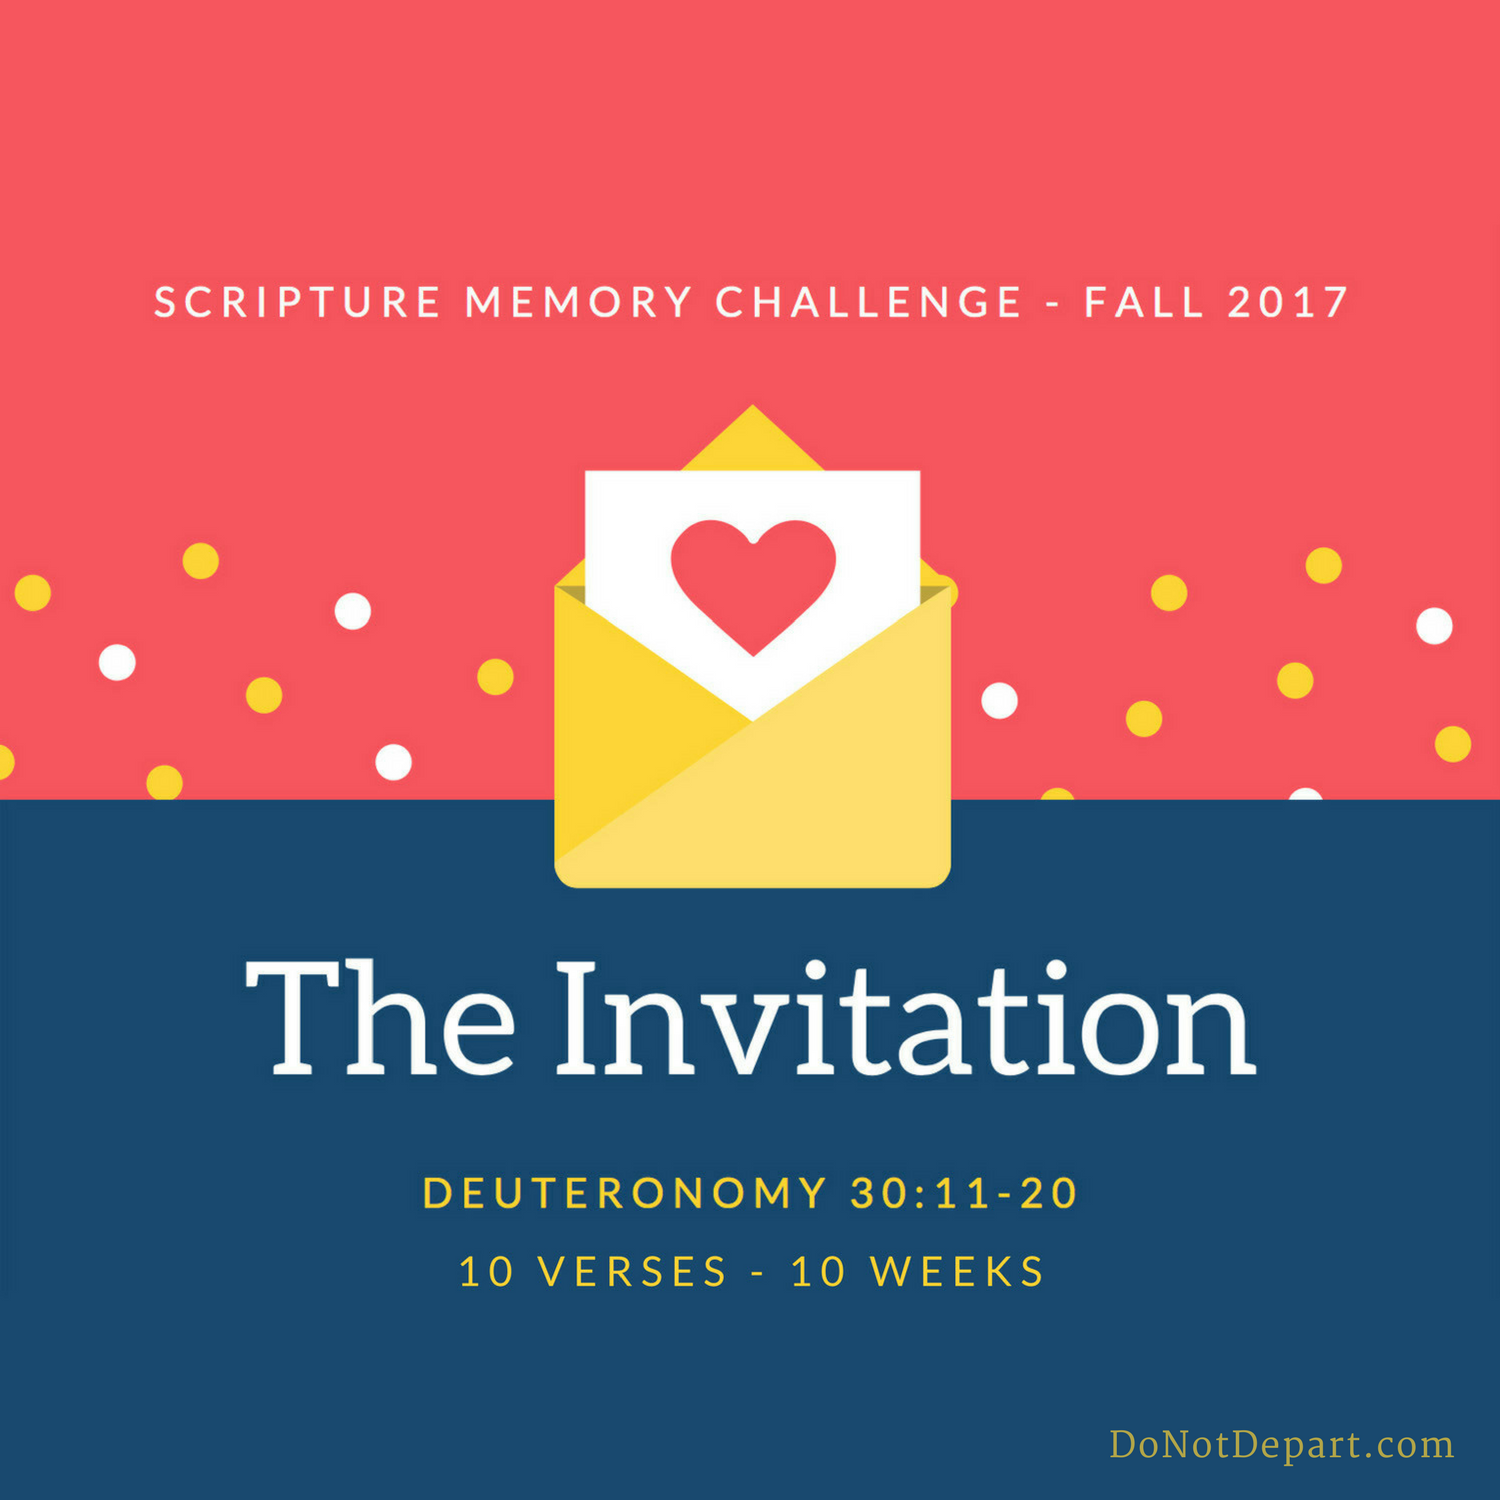 Your Invitation – Register to Memorize Deuteronomy 30